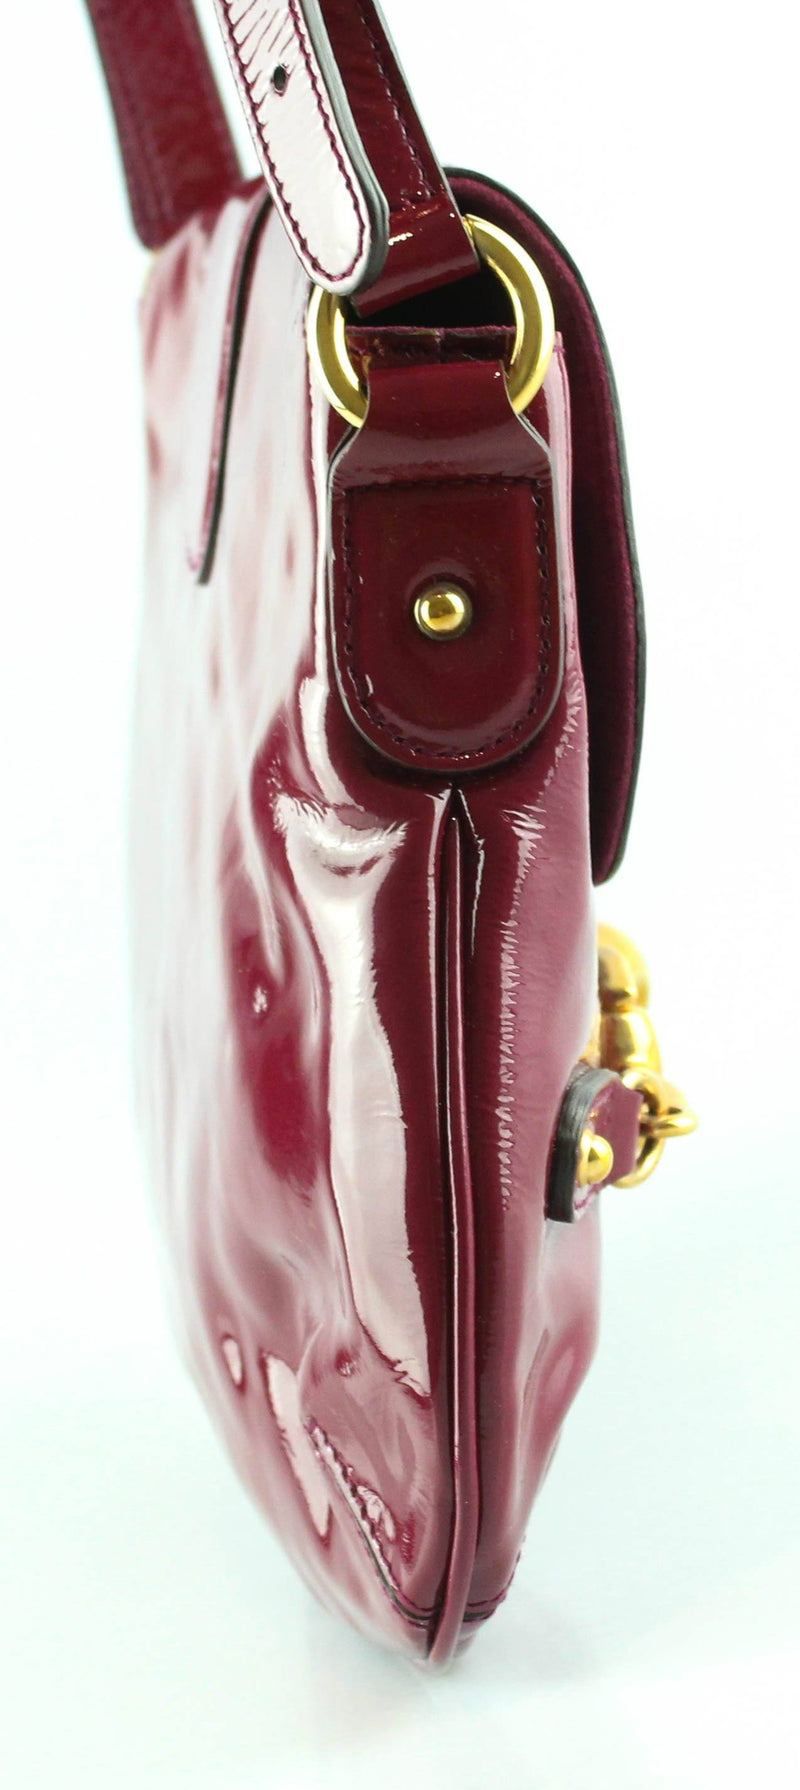 Gucci Pink Patent Horsebit Mini Bag